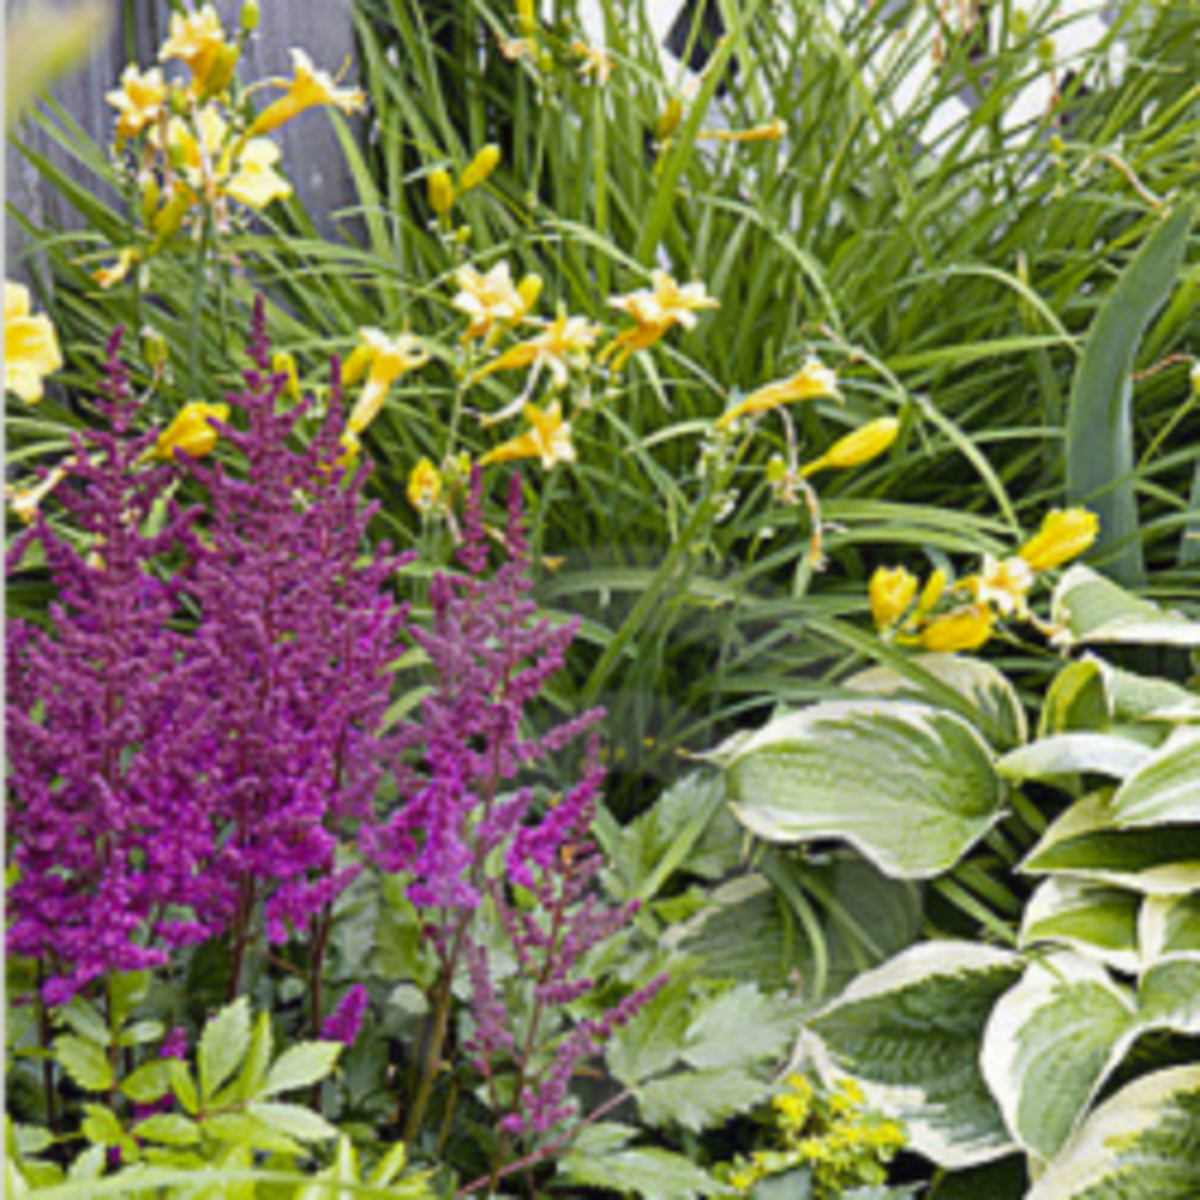 Chazz on hubpages for Easy care perennial plants